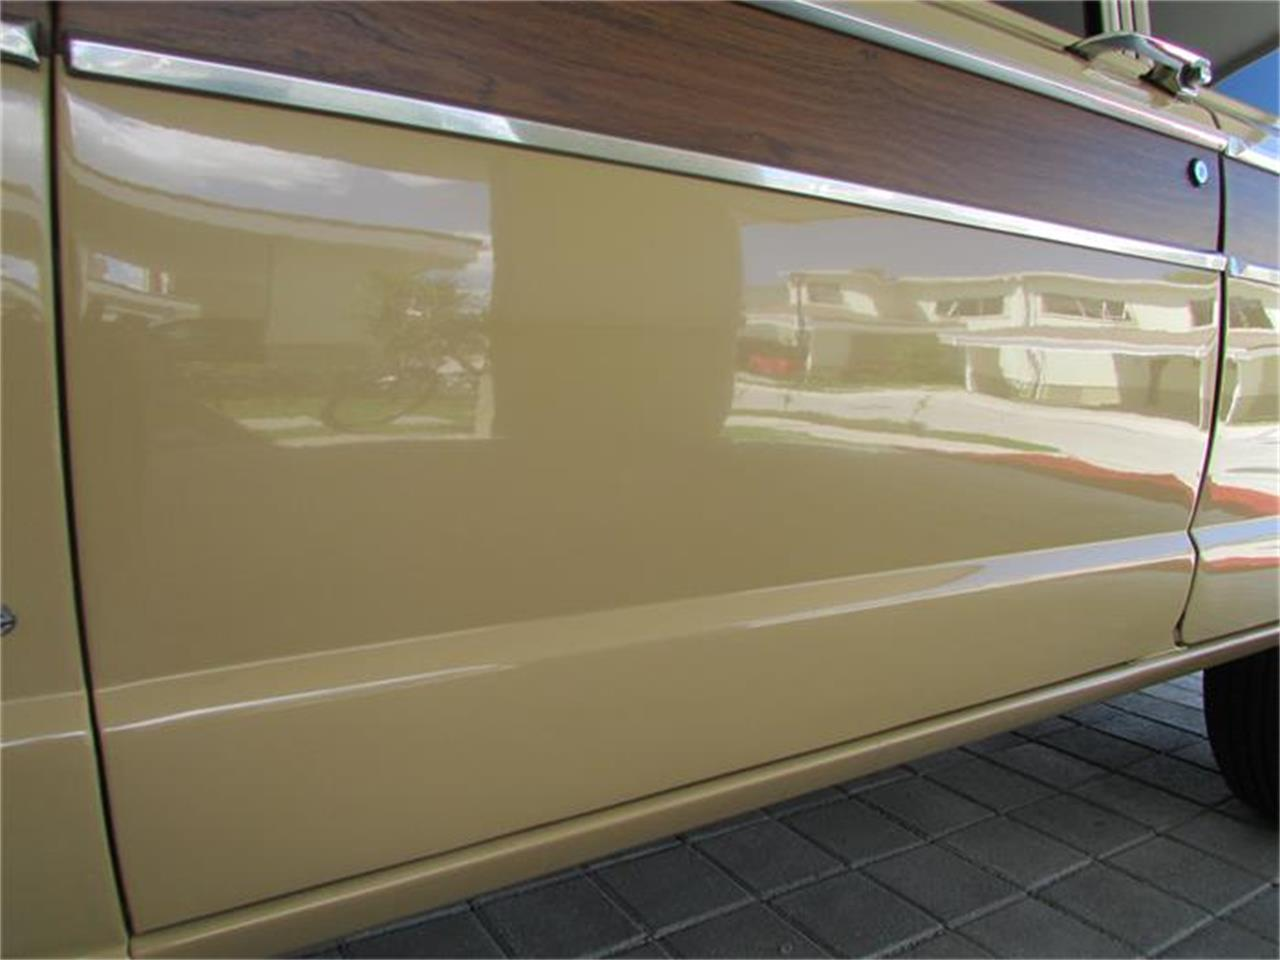 Large Picture of 1977 Wagoneer located in San Salvador - $22,500.00 Offered by a Private Seller - ANFF